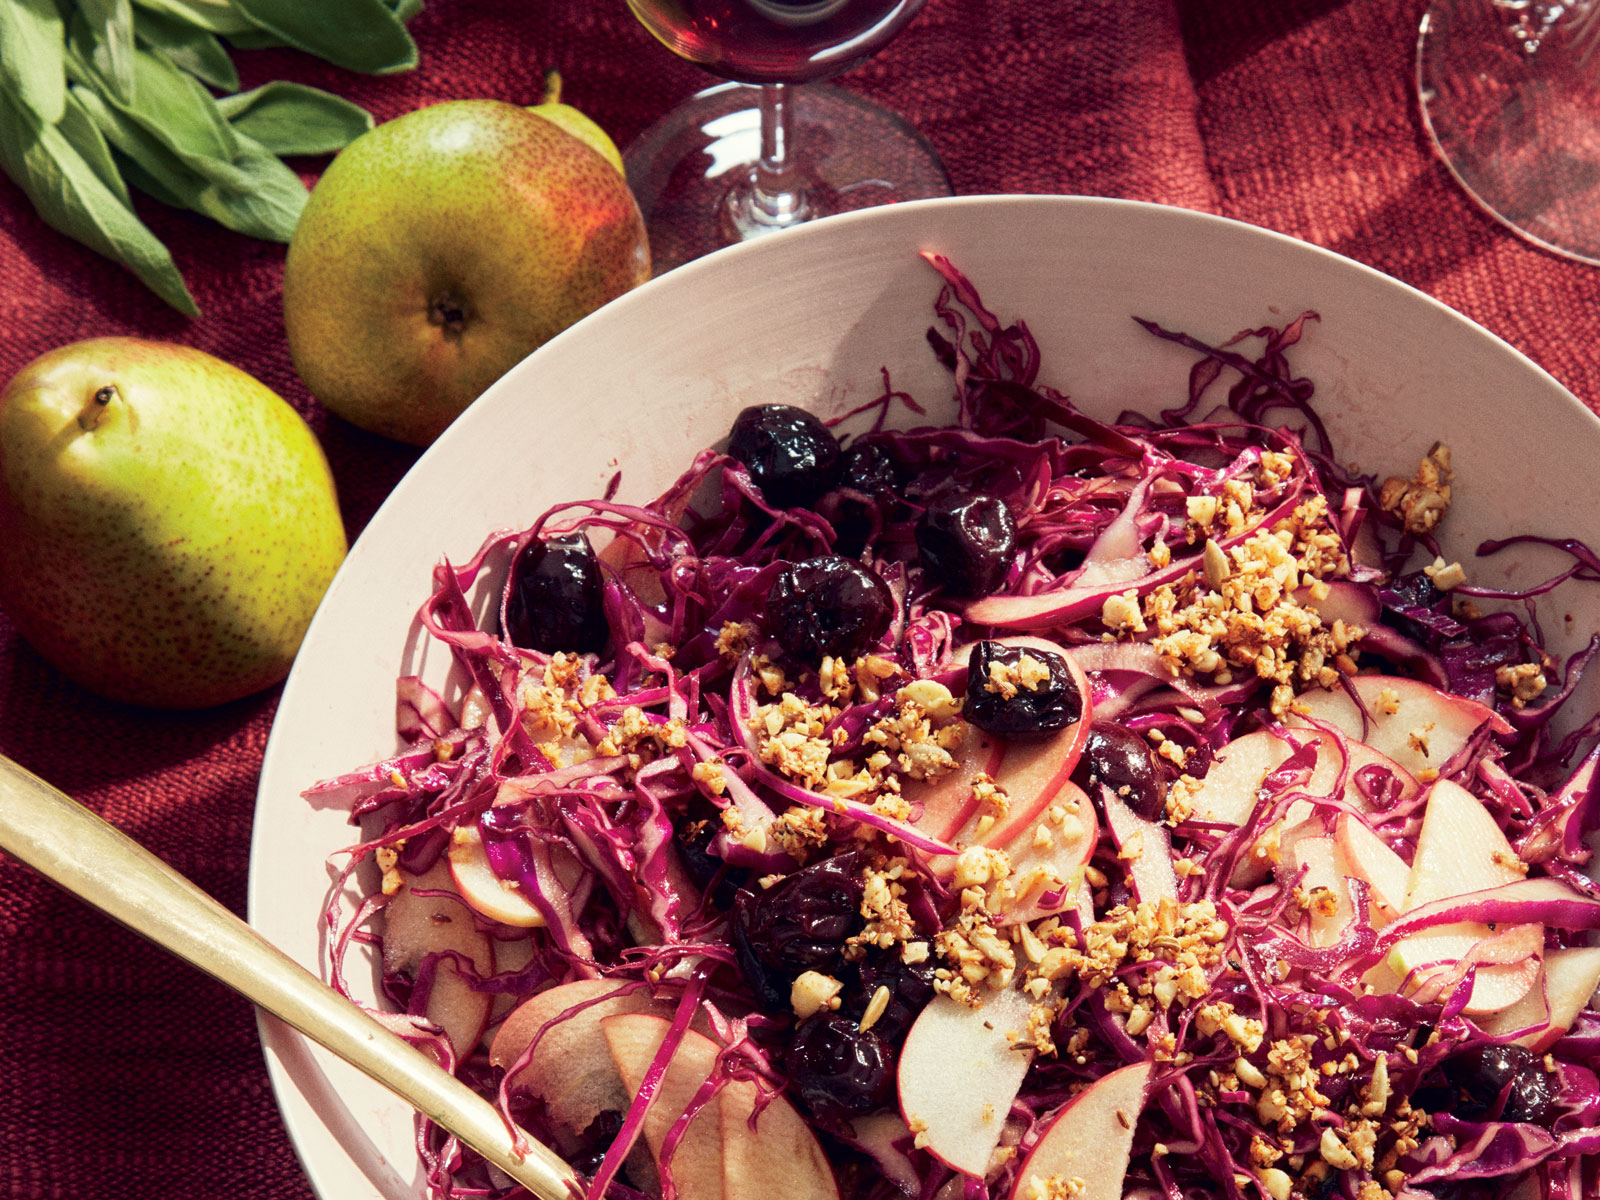 Red Cabbage Salad with Baked Cherries, Apples, and Almond Dukkah